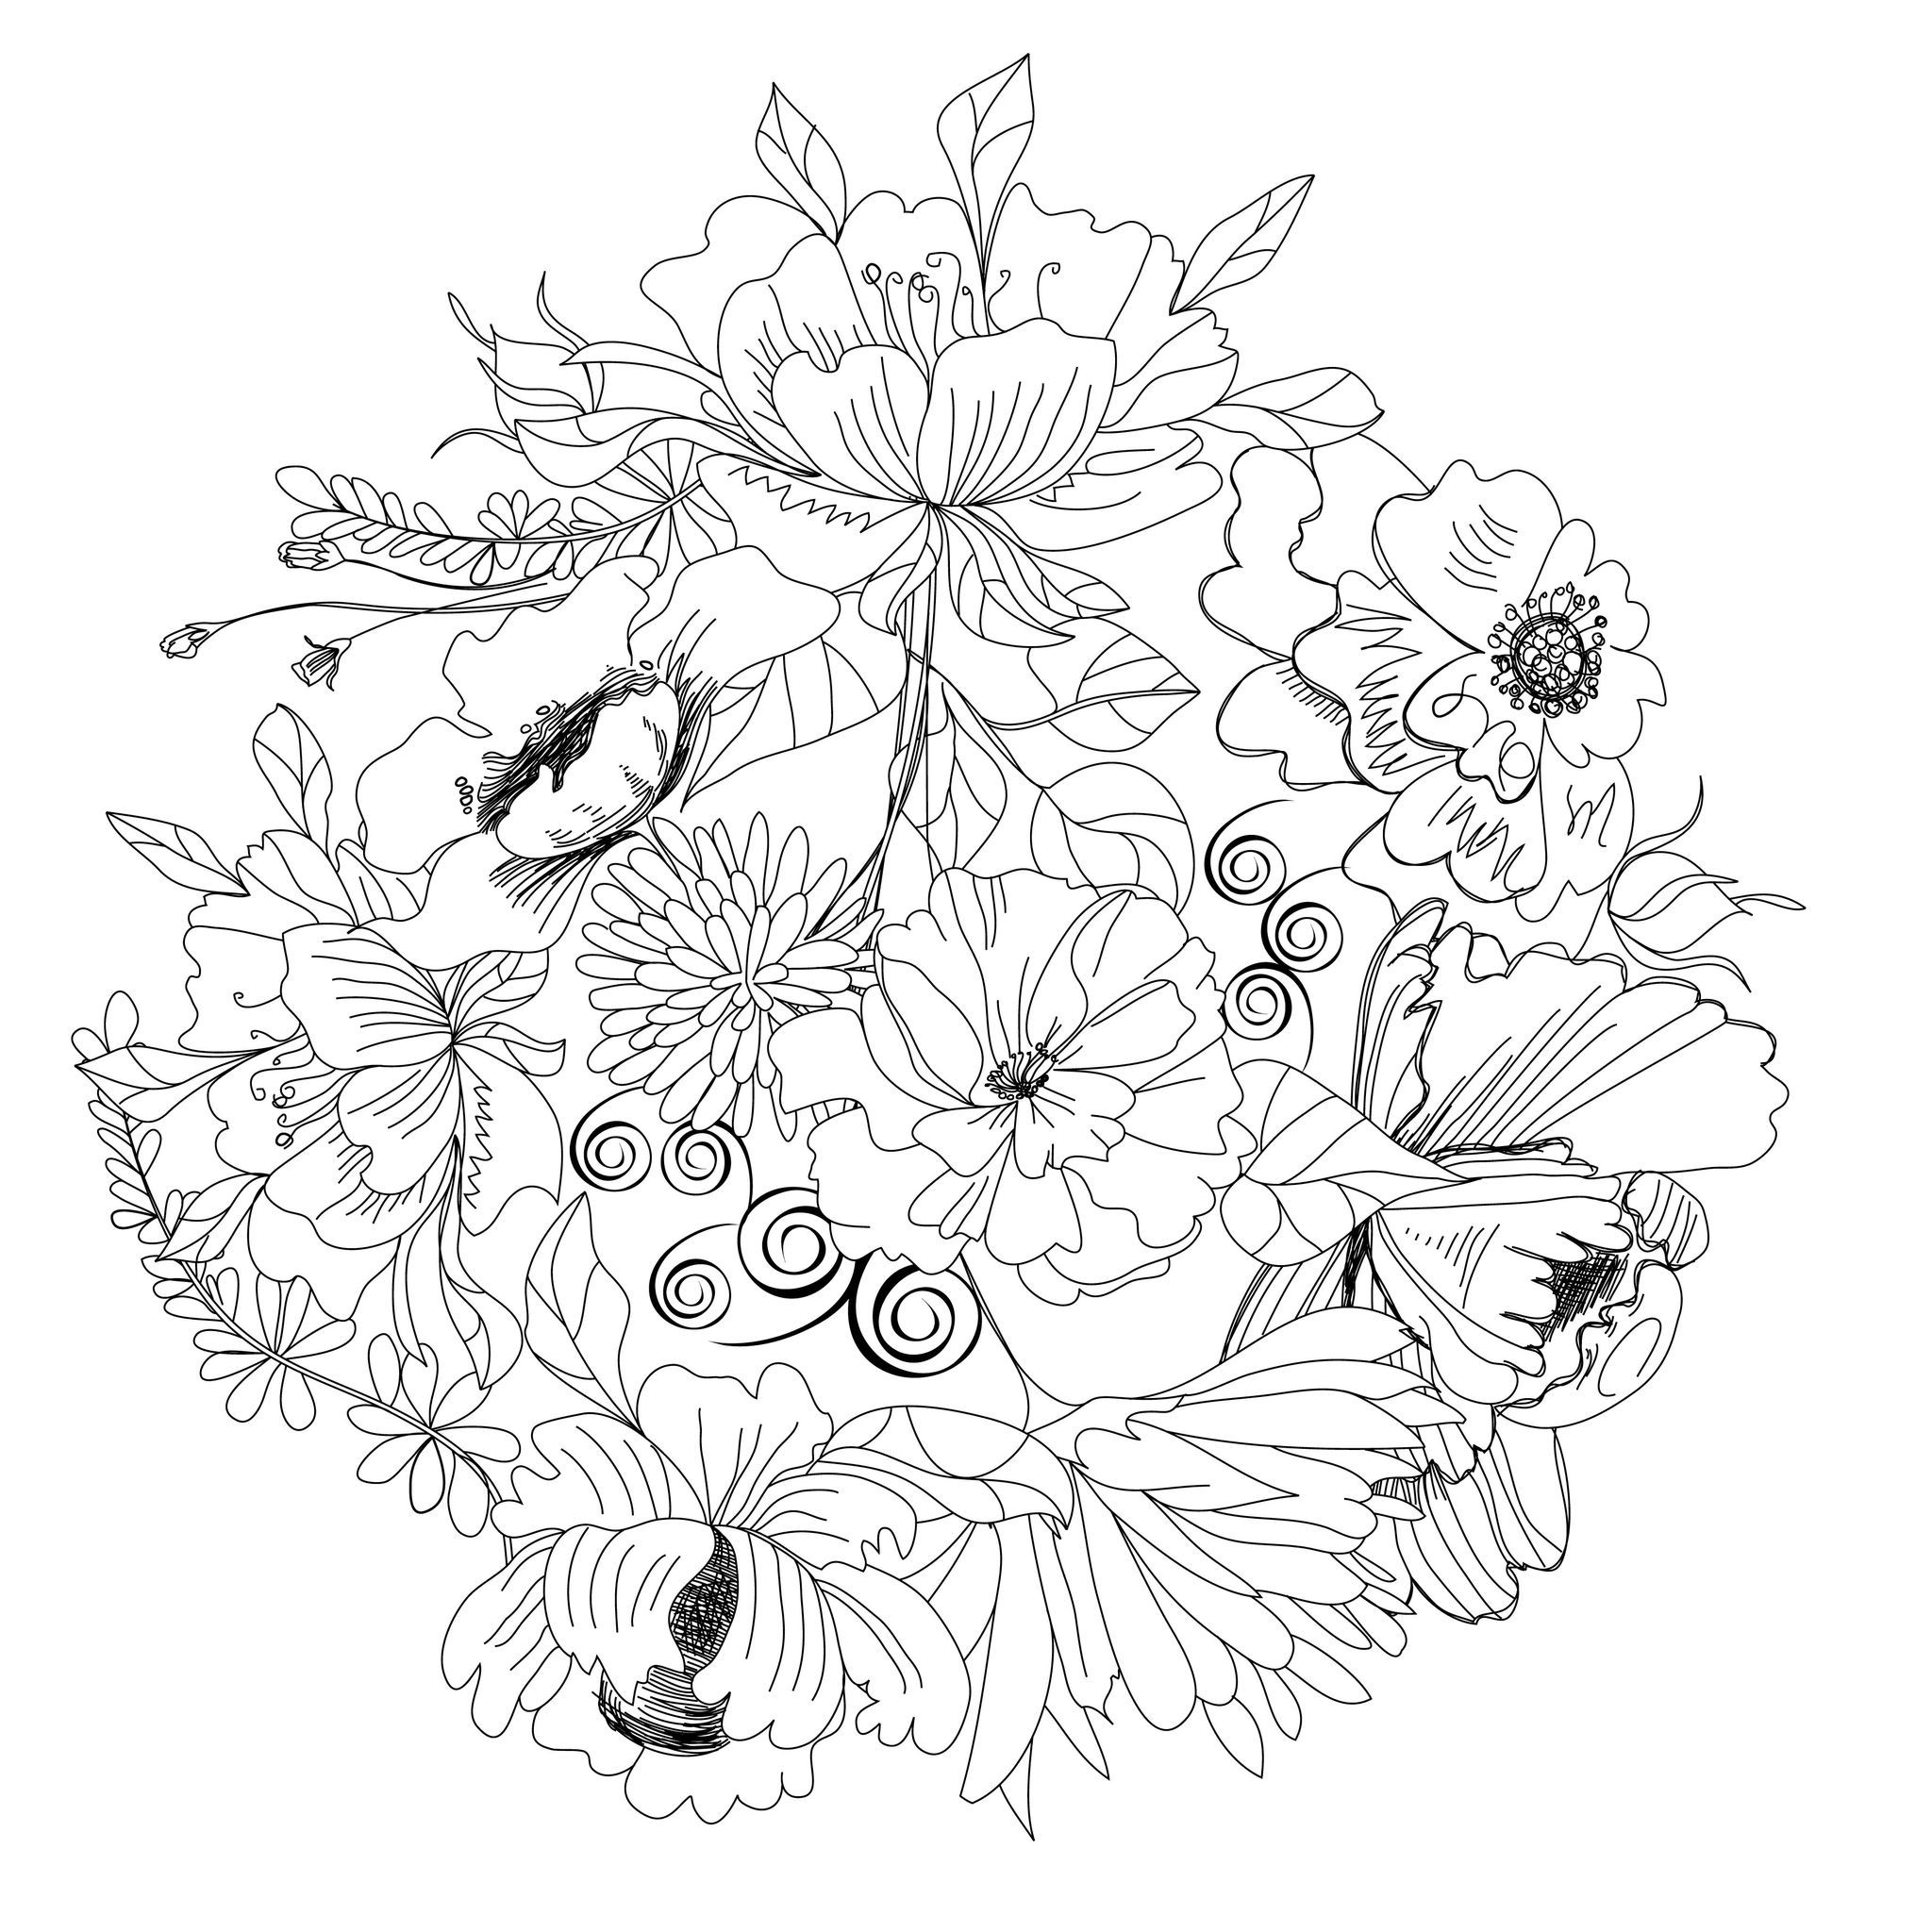 Pin By Geri Acosta On Adults Coloring Pages Coloring